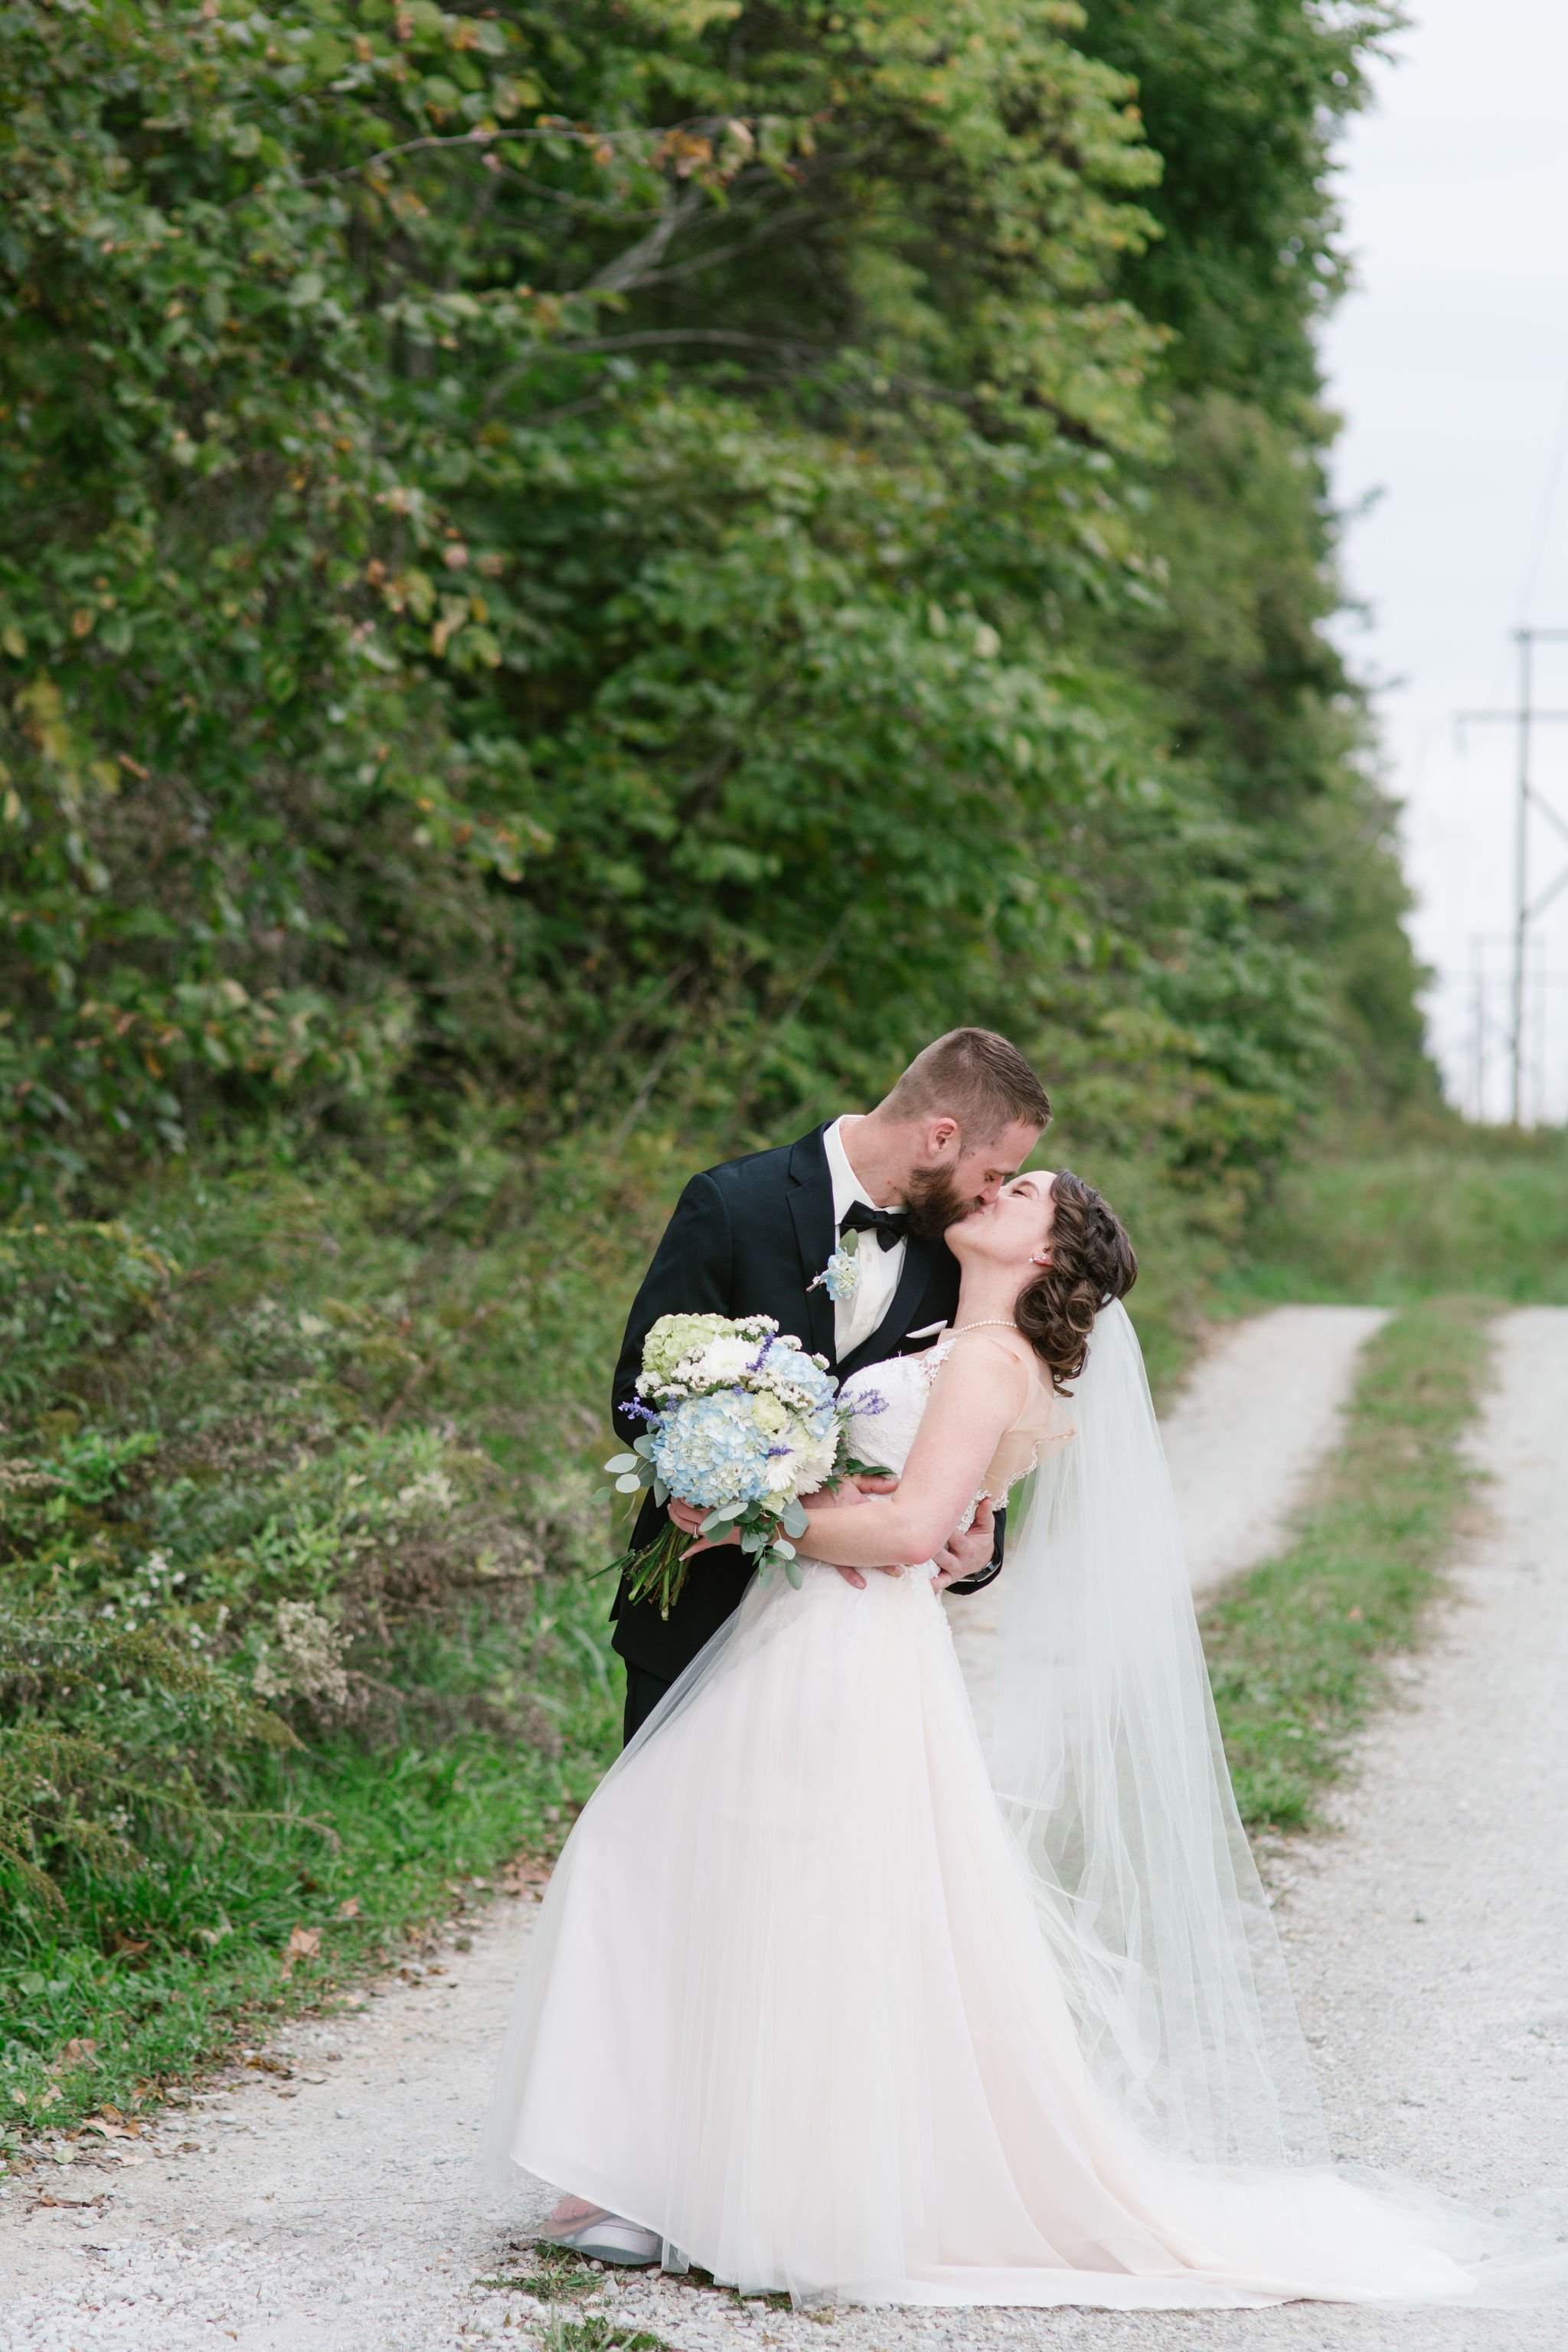 Kellsey&JasonWedding(Final)-125.jpg